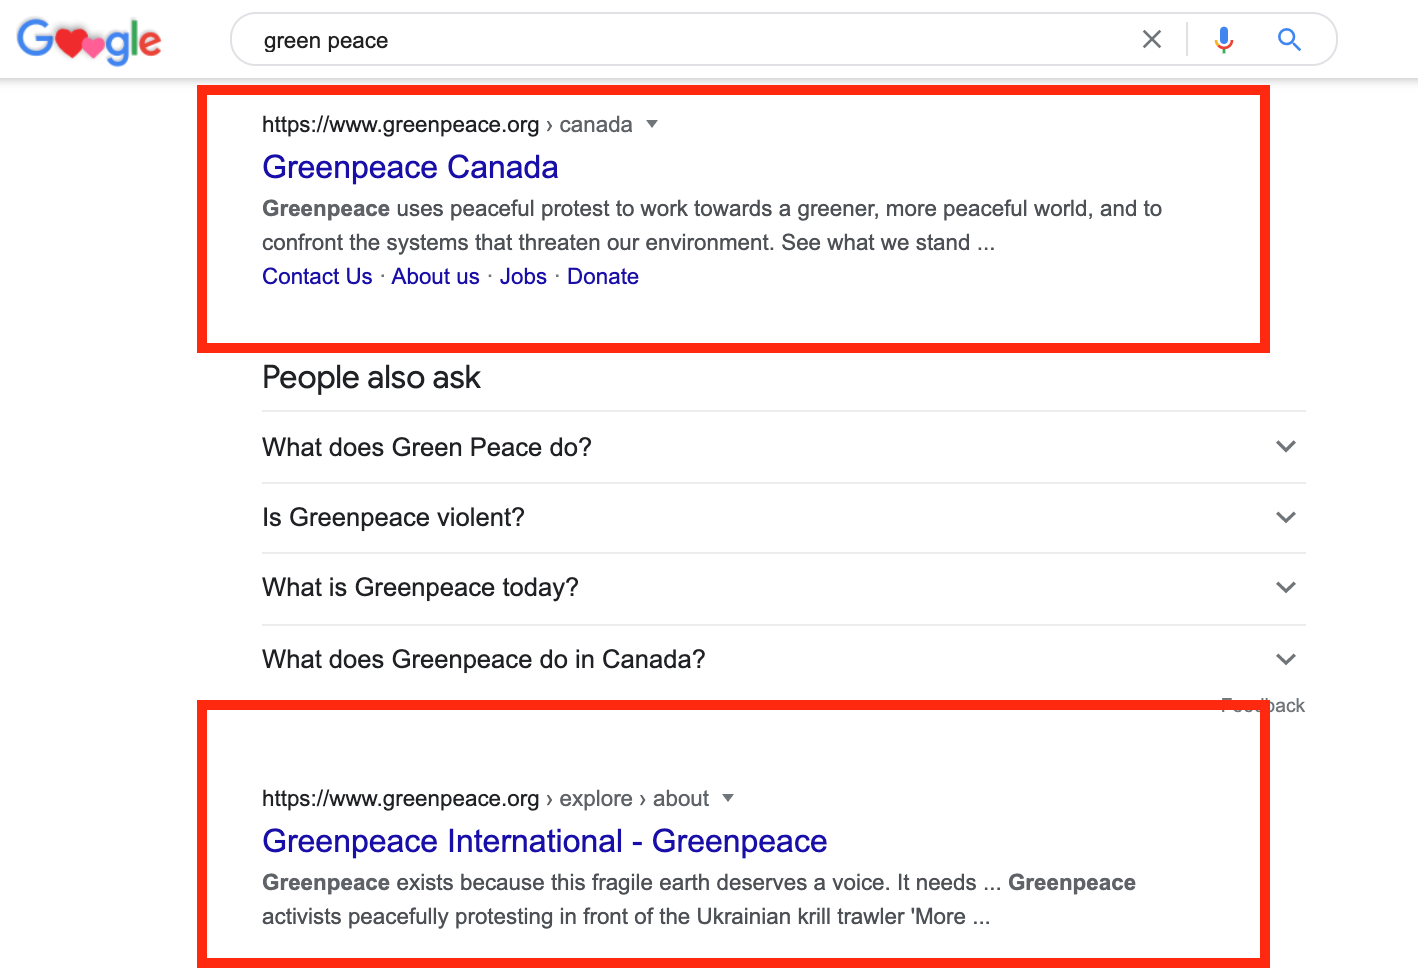 GreenPeace Website Pages in Branded Search.